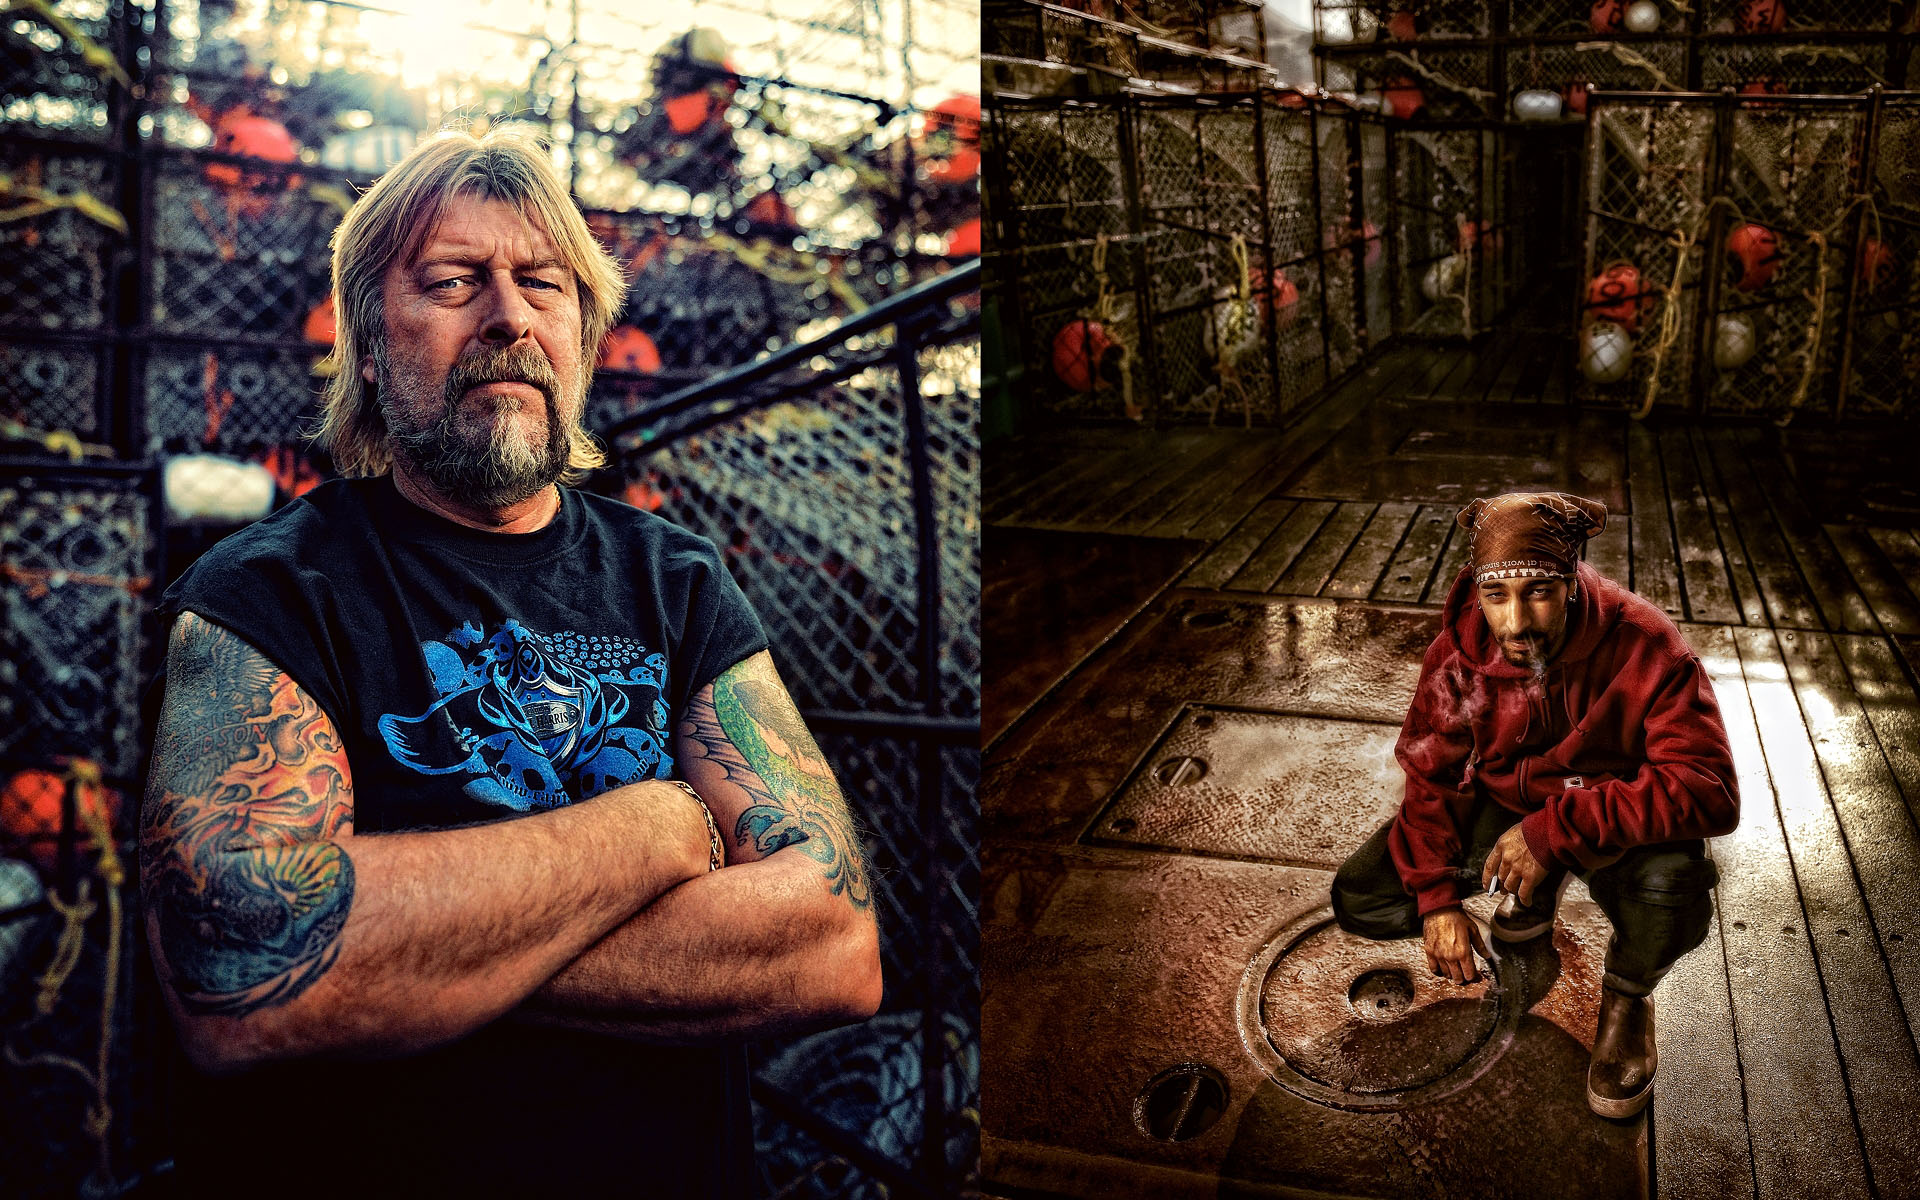 The Deadliest Catch set photographer Blair Bunting